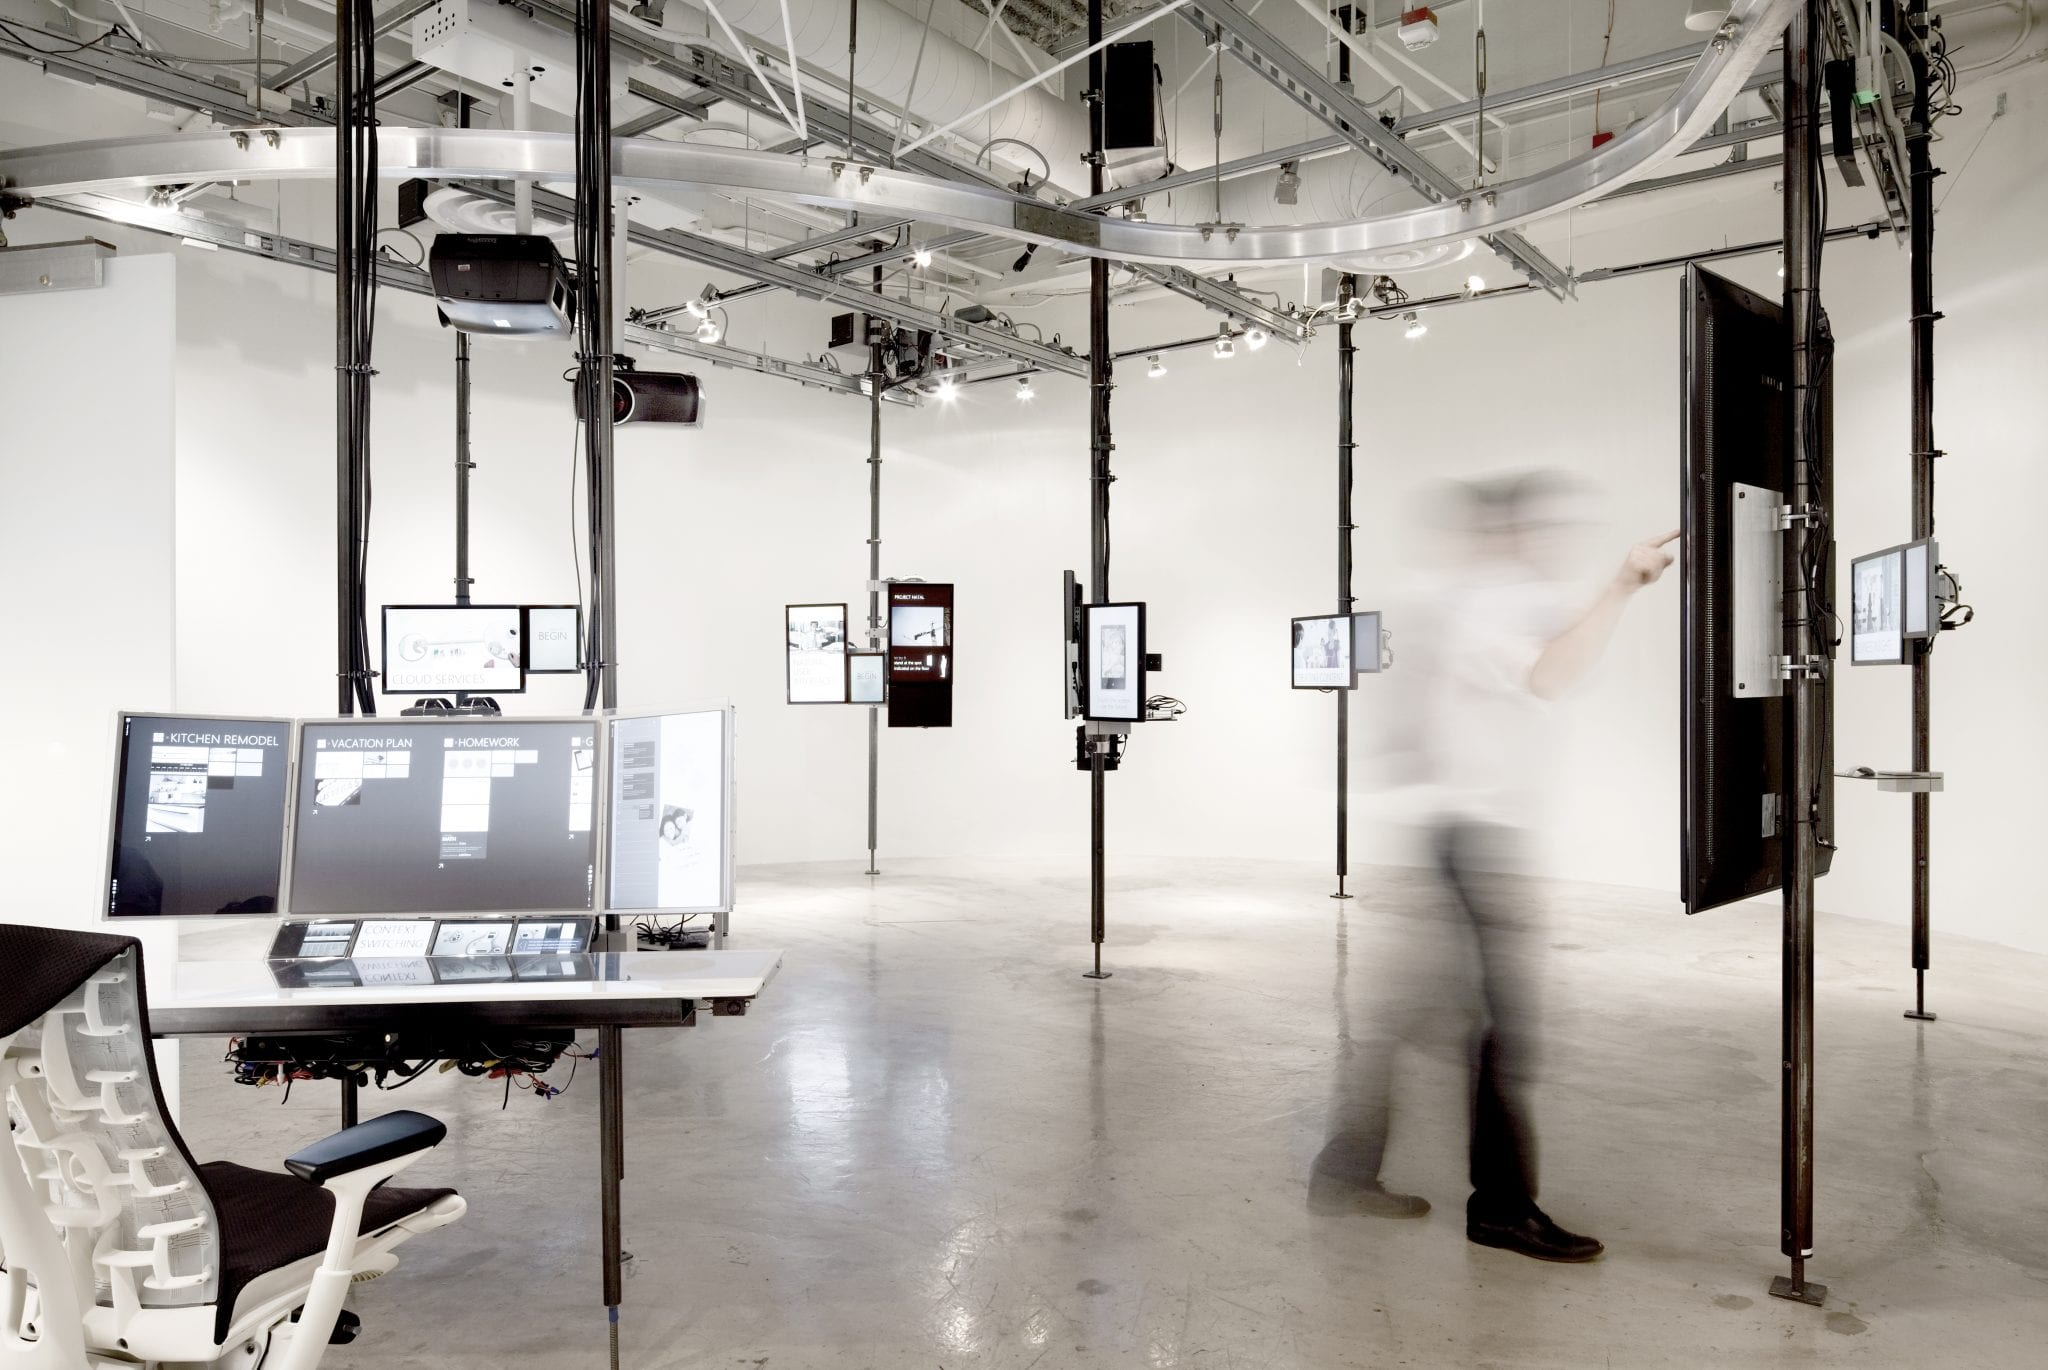 Microsoft's envisioning centre